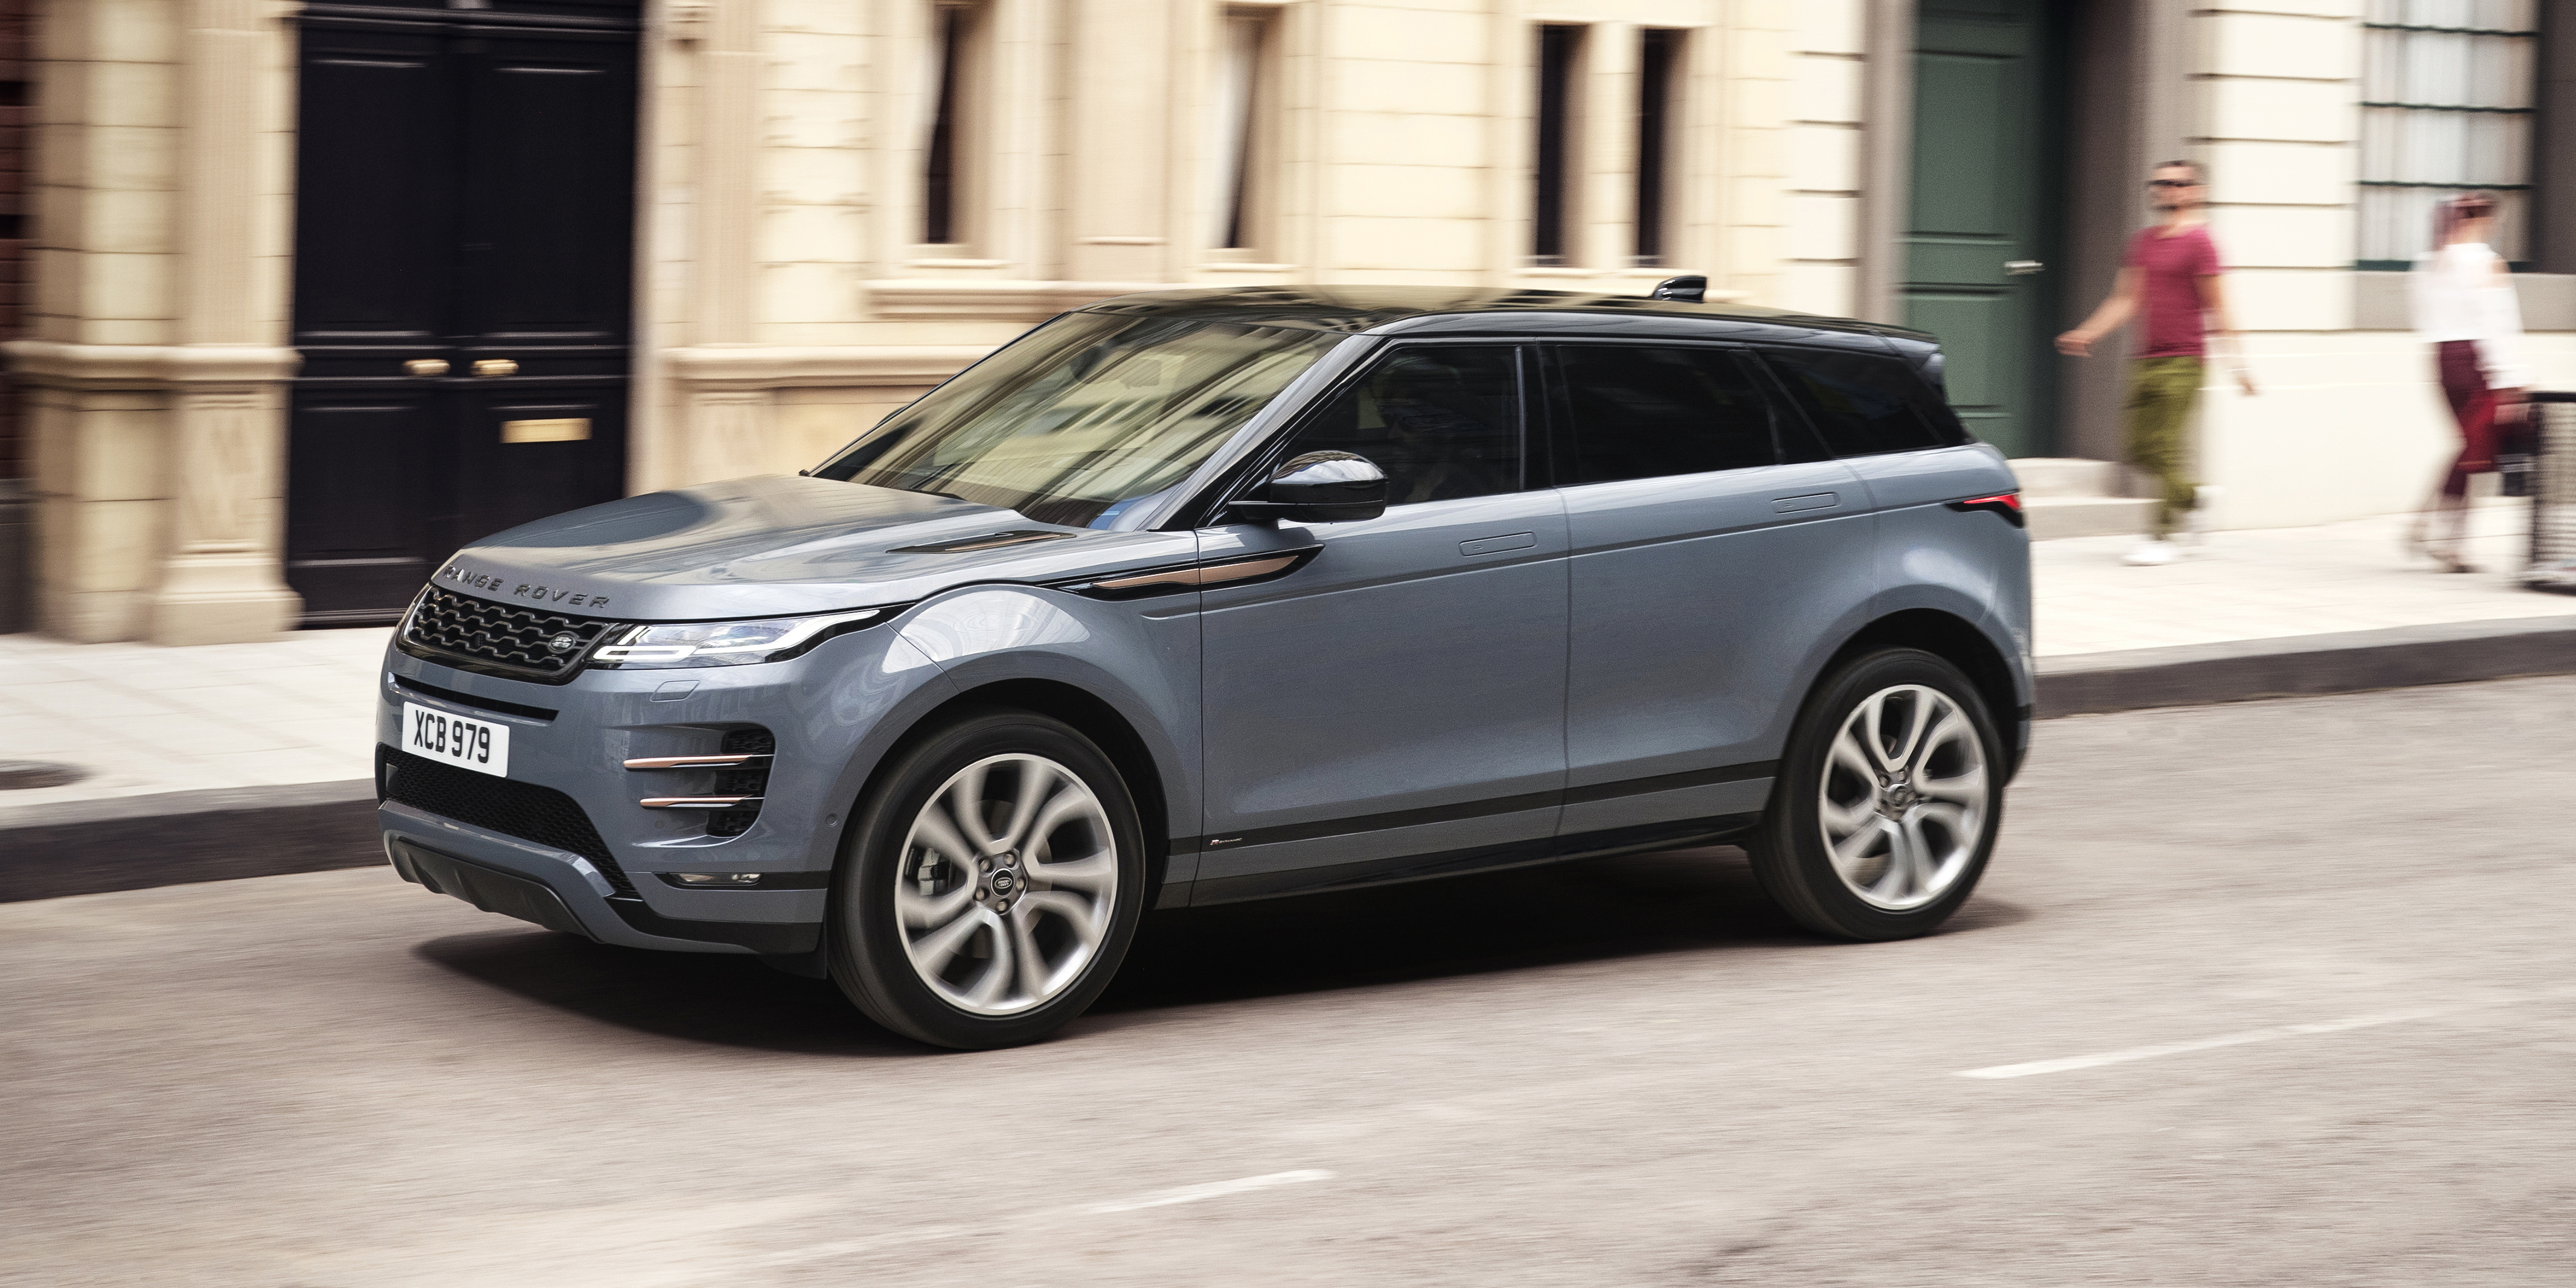 Land Rover Range Rover Evoque exterior photo